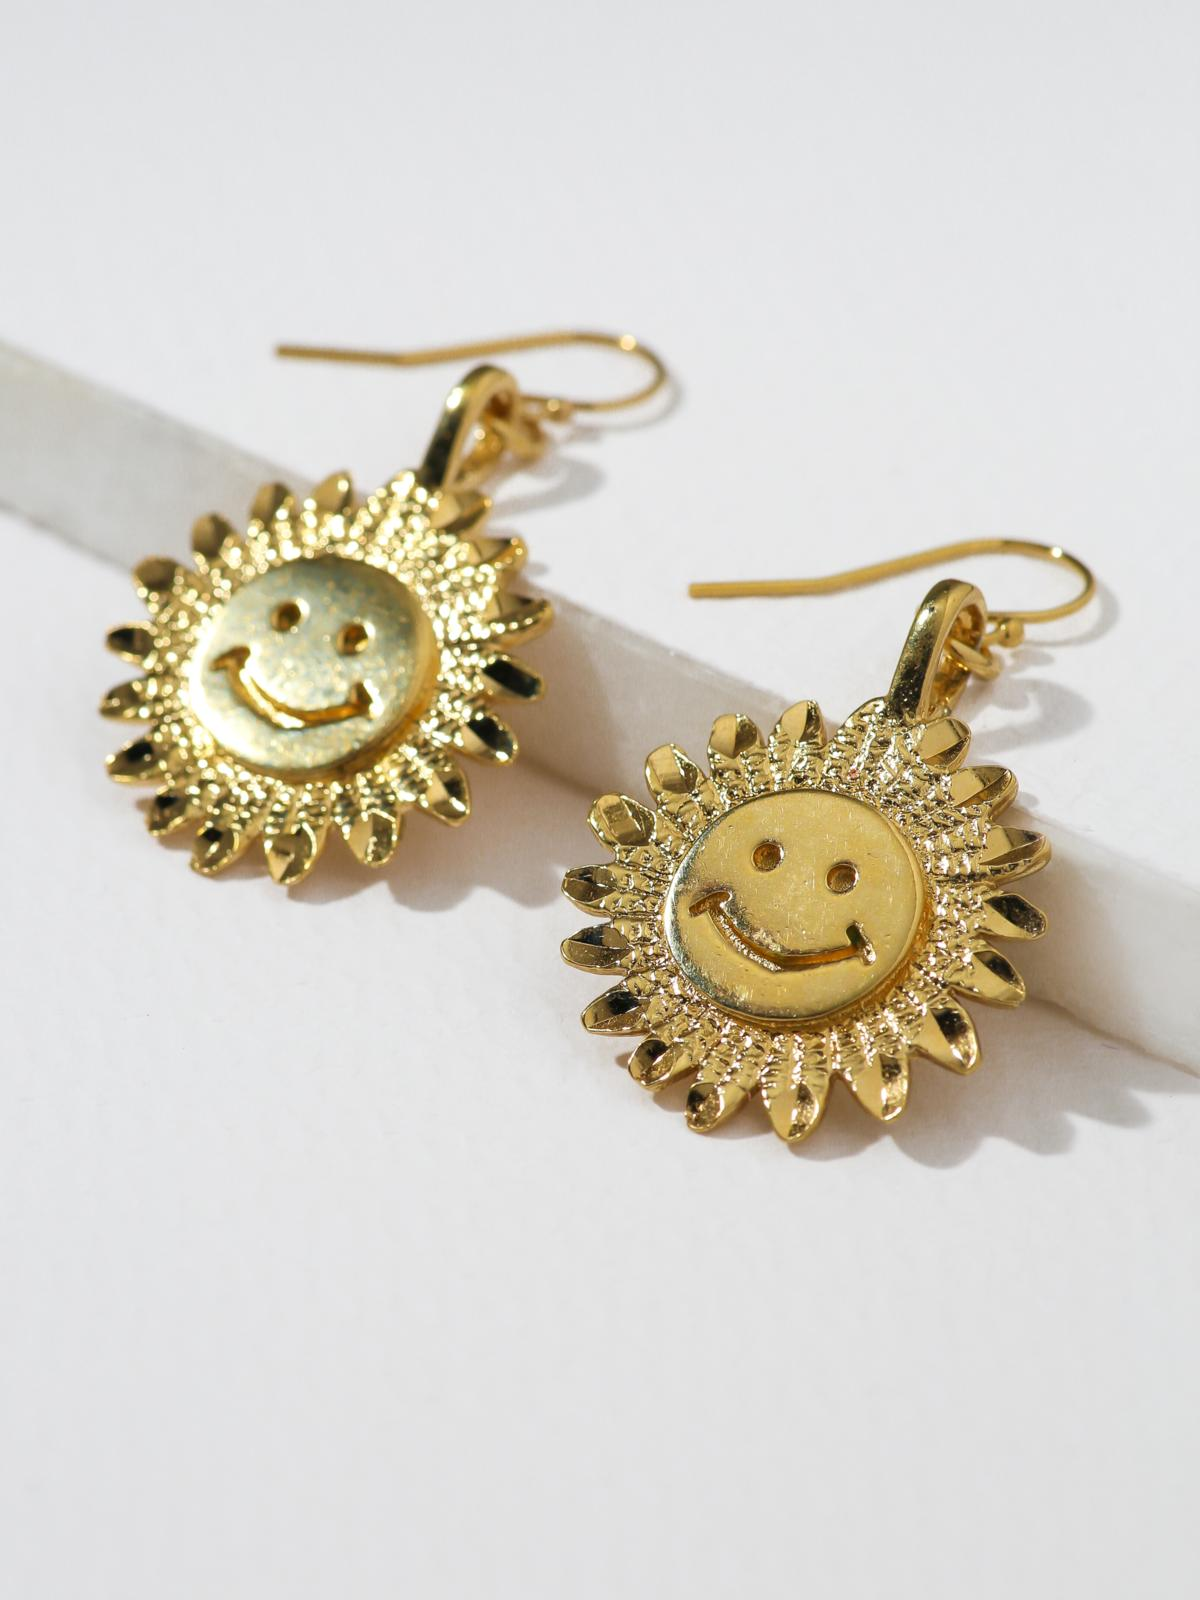 The Happy Flower Earrings